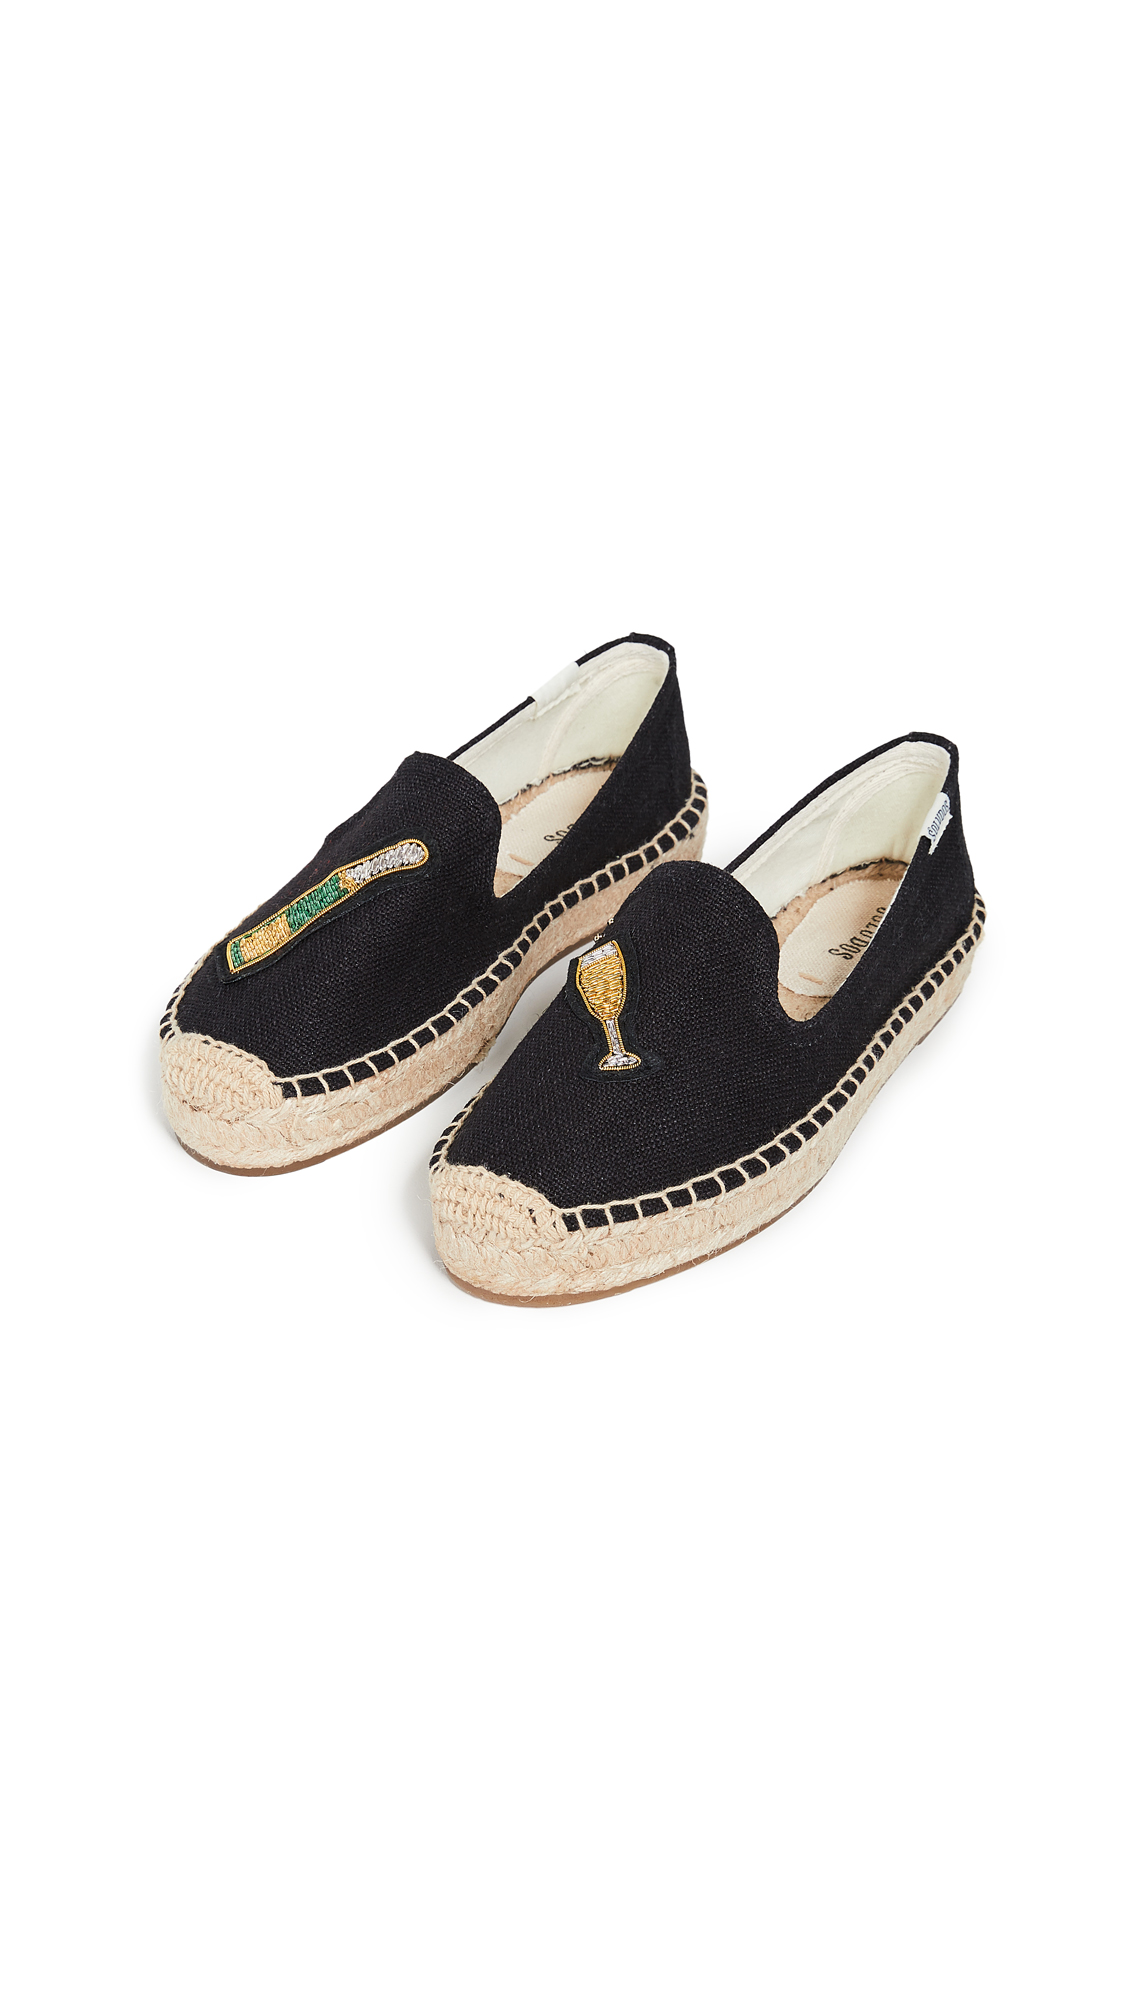 Soludos Cheers Smoking Slippers - Black